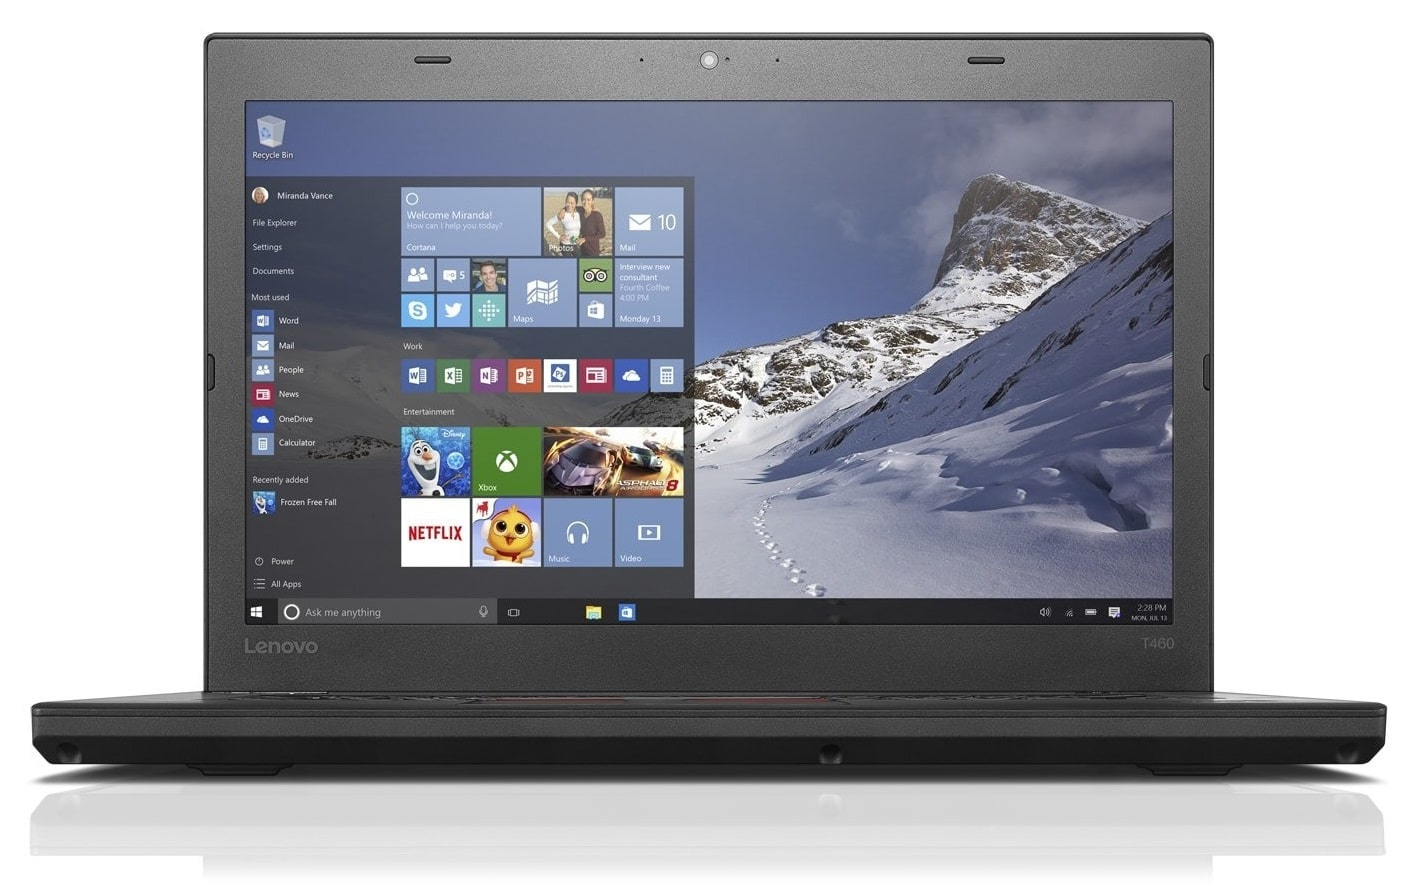 lenovo laptop under 1000 pounds UK